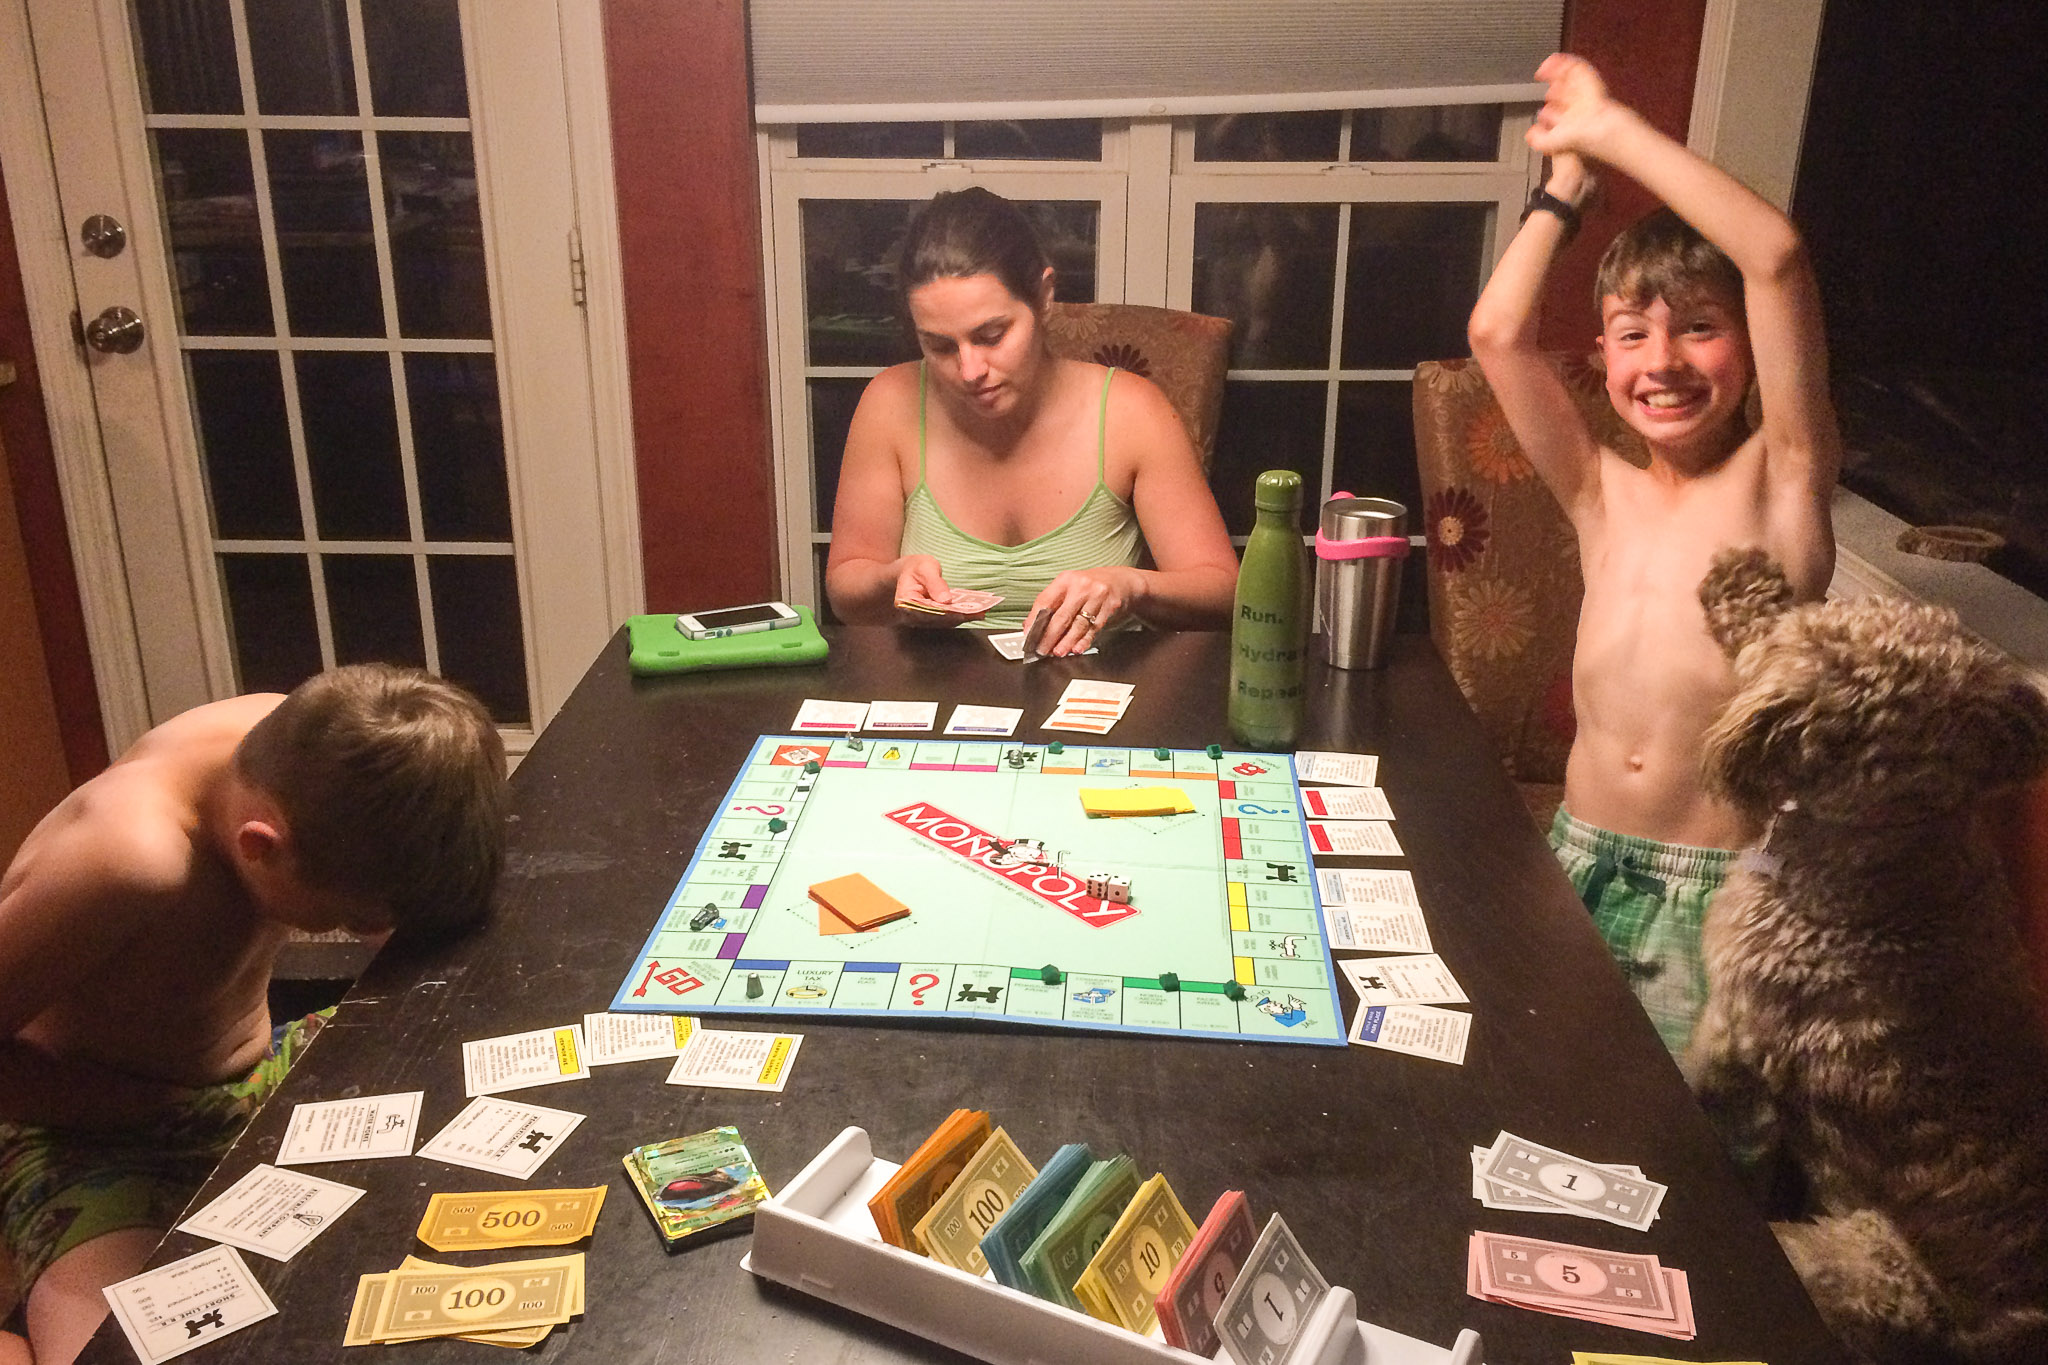 Play Monopoly, They Said. It'll Be Fun, They said.